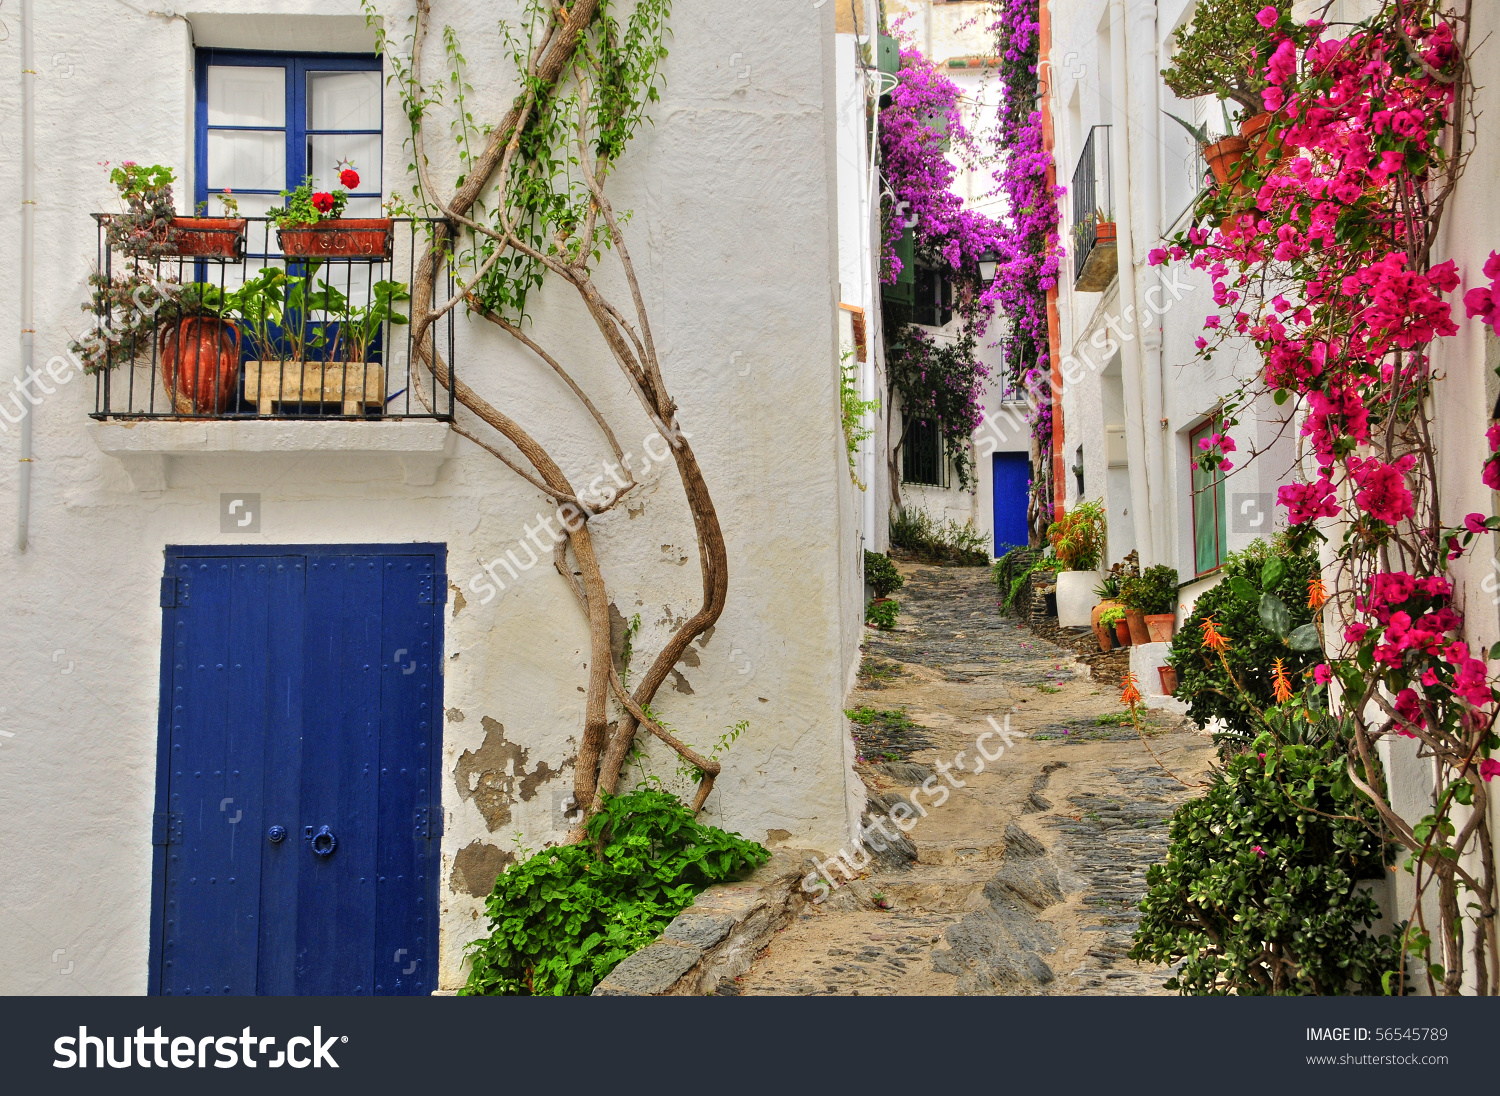 View Street Cadaques Costa Brava Spain Stock Photo 56545789.